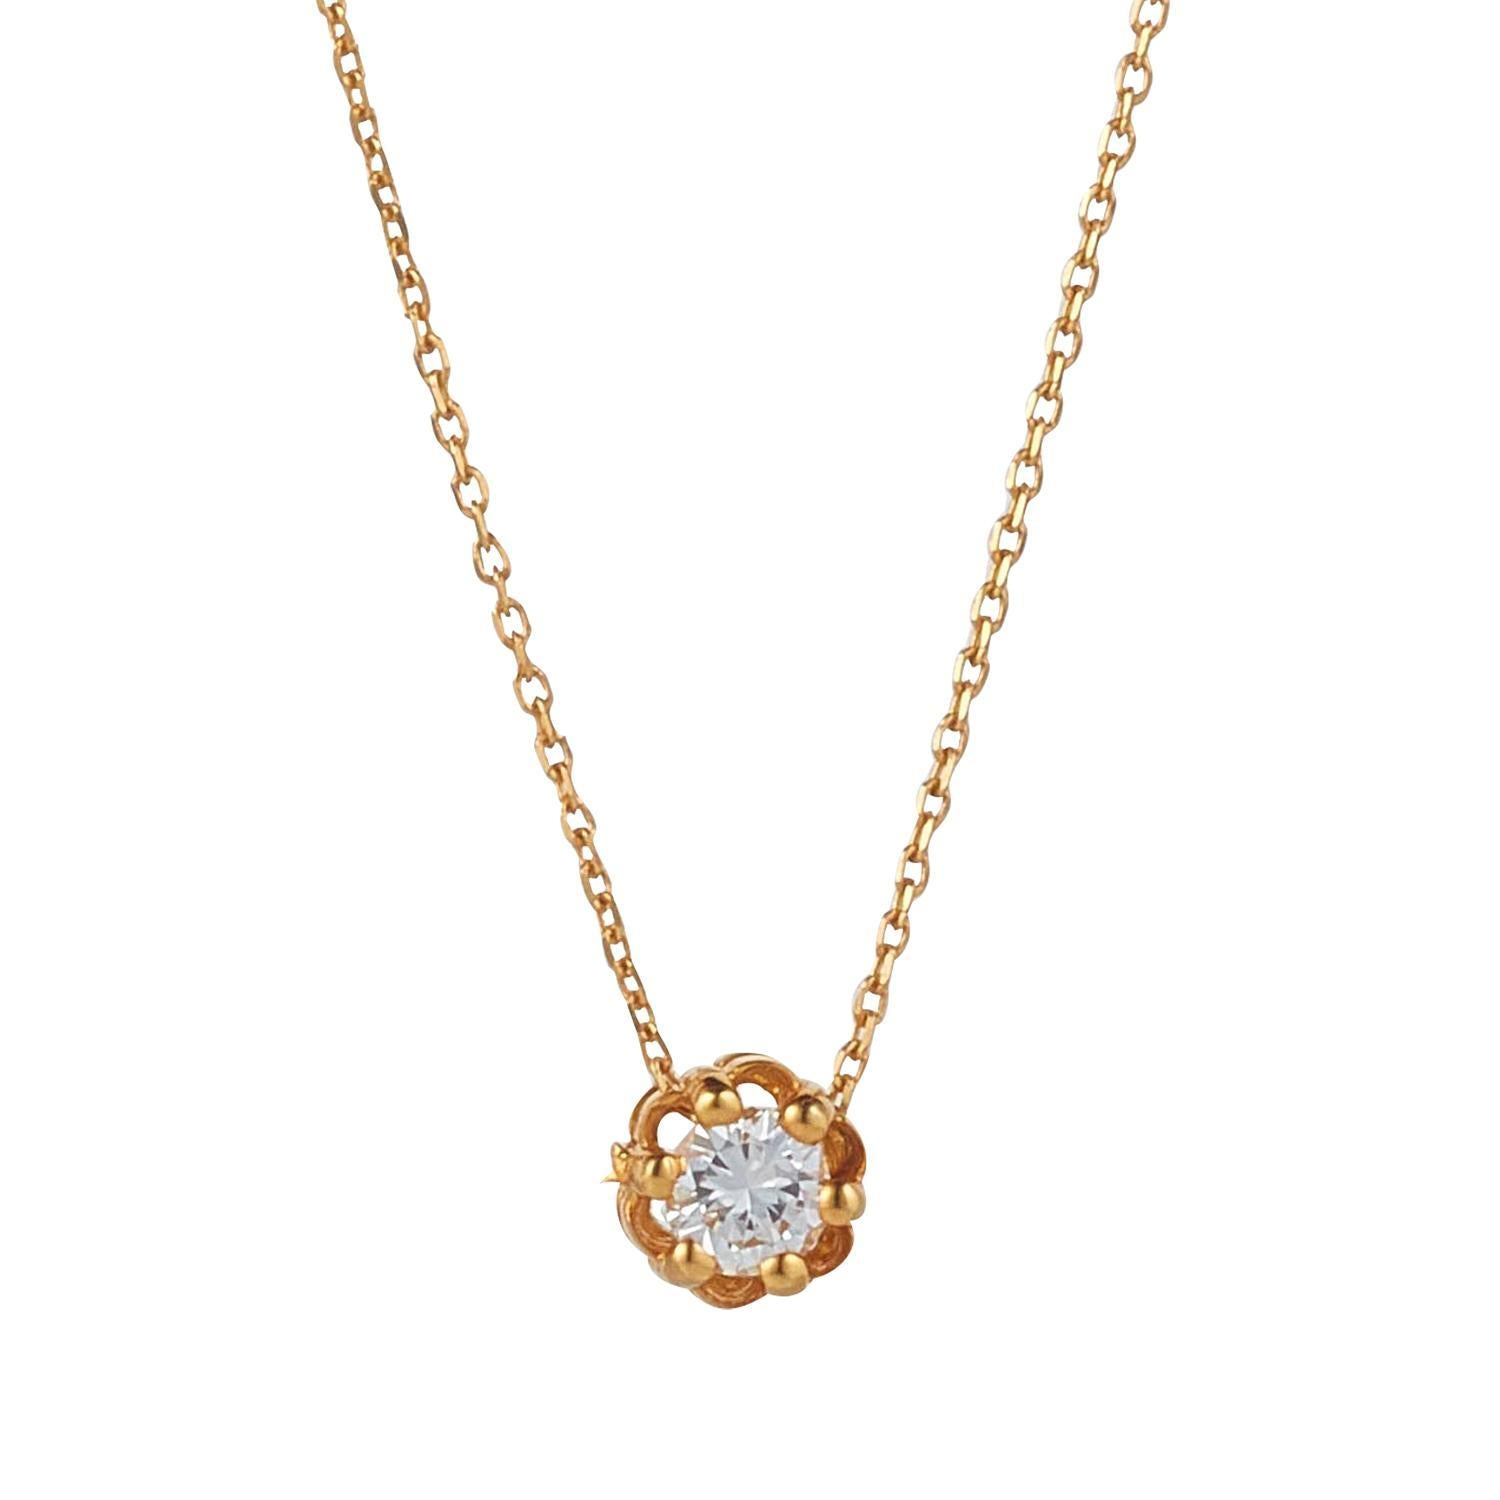 18kt Yellow Gold Solitaire Diamond Pendant